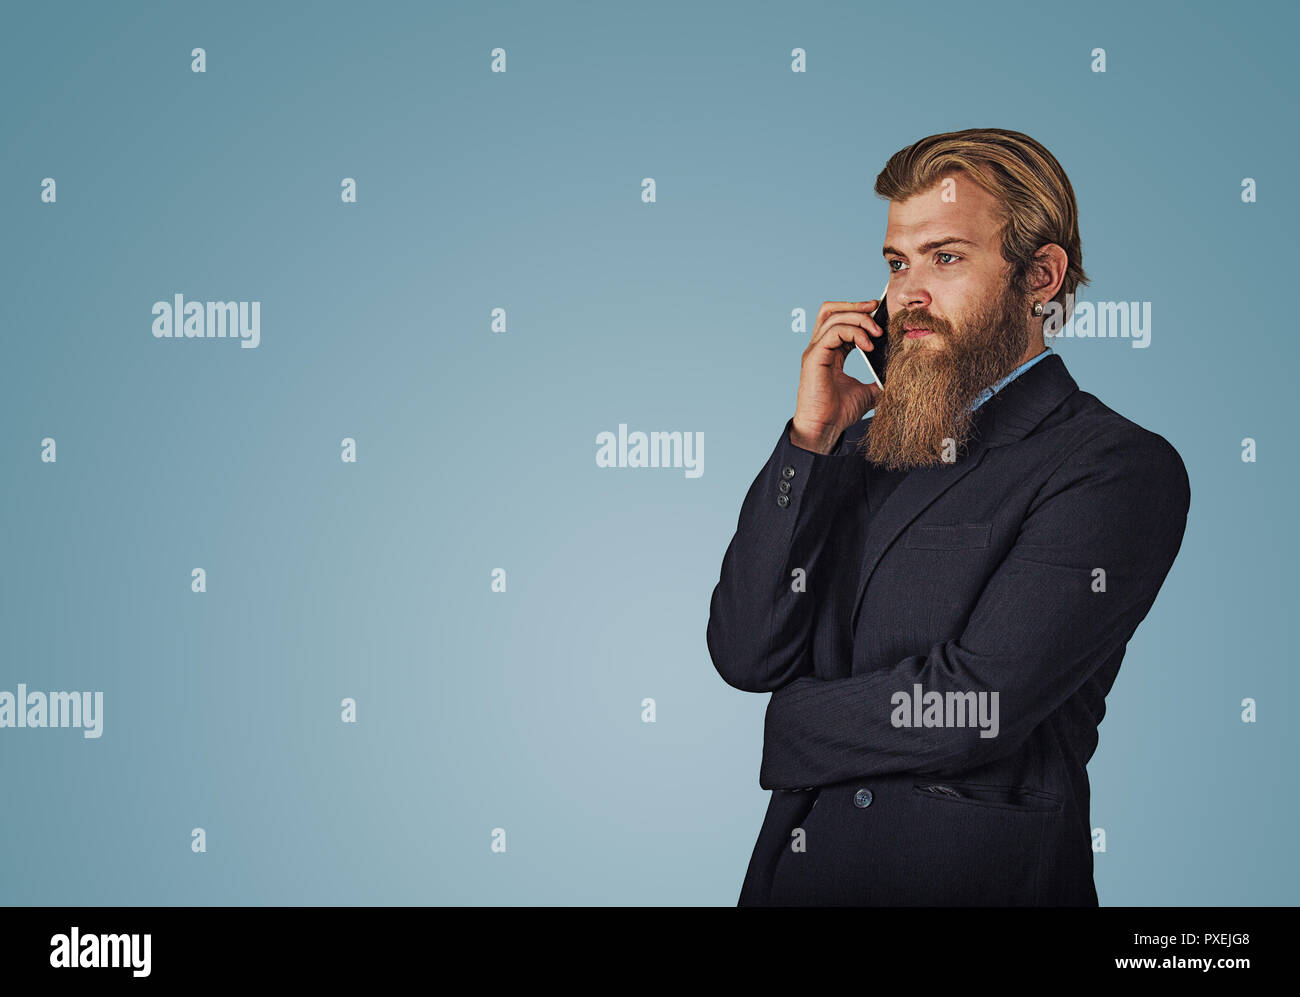 Bearded hipster business man holding talking by mobile phone isolated on blue studio wall Background. Serious face expression, human emotion, body lan Stock Photo